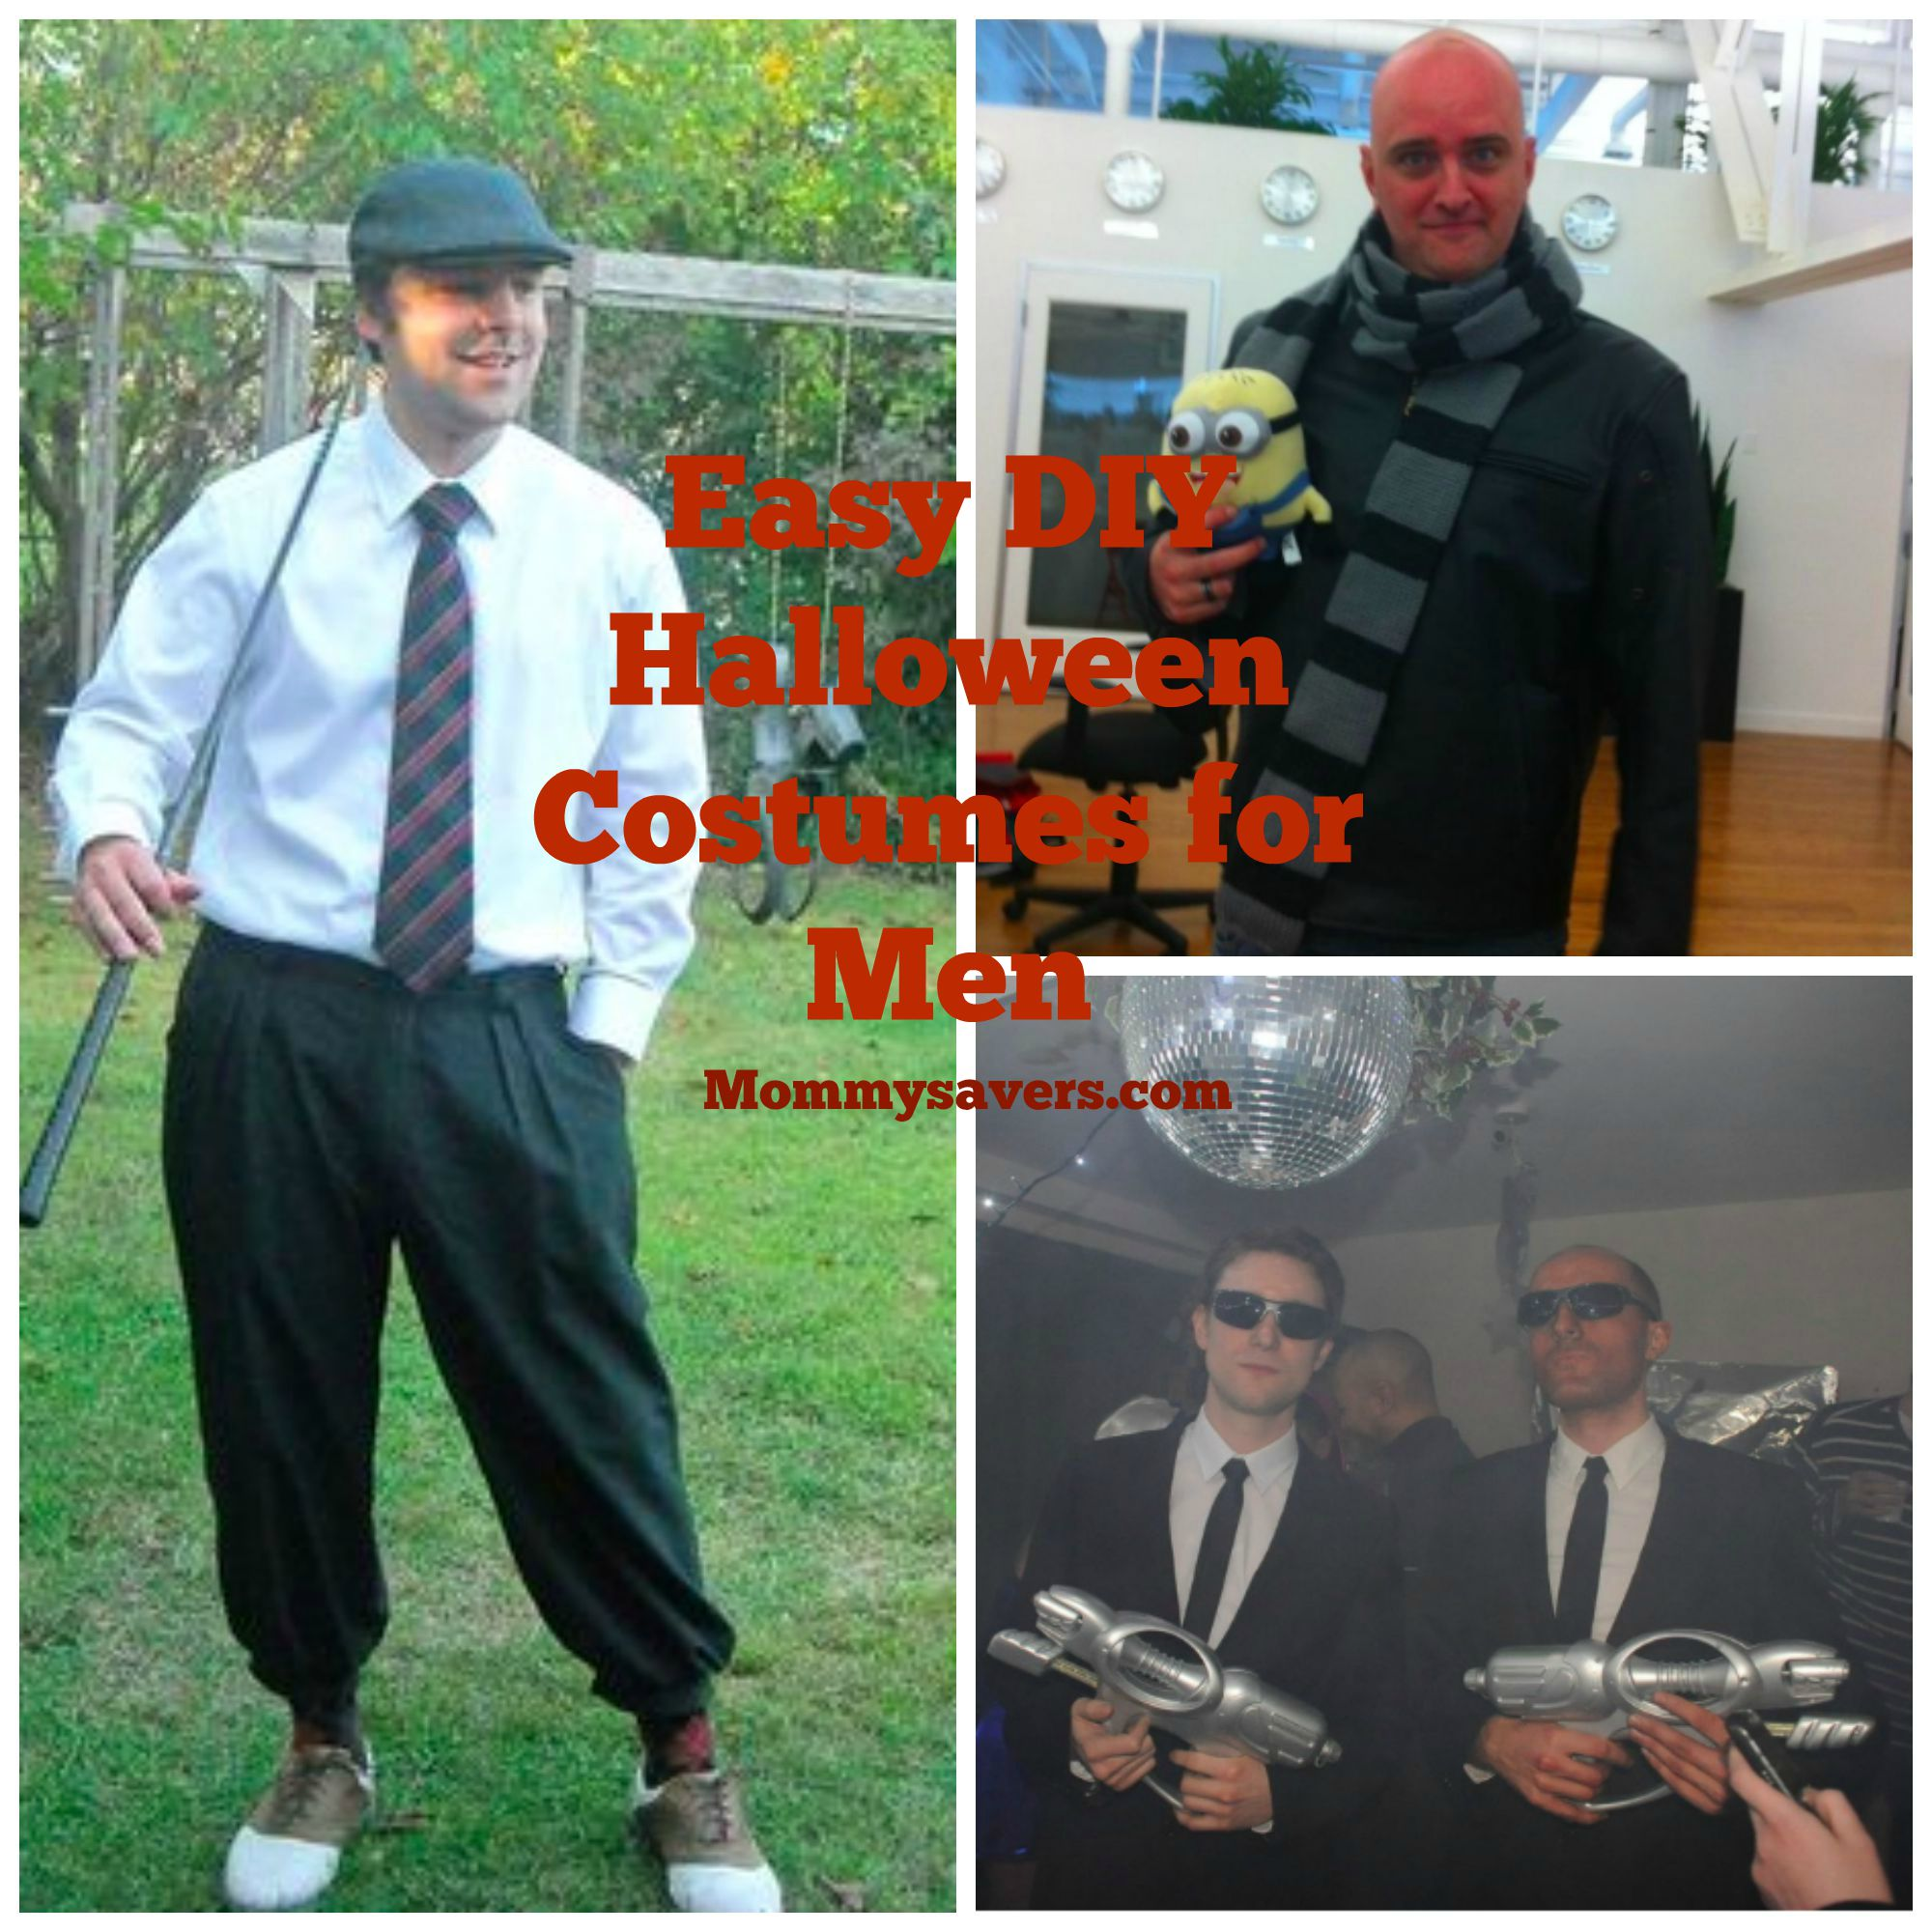 Diy easy halloween costume ideas for men mommysavers mommysavers diy halloween costumes for men solutioingenieria Image collections